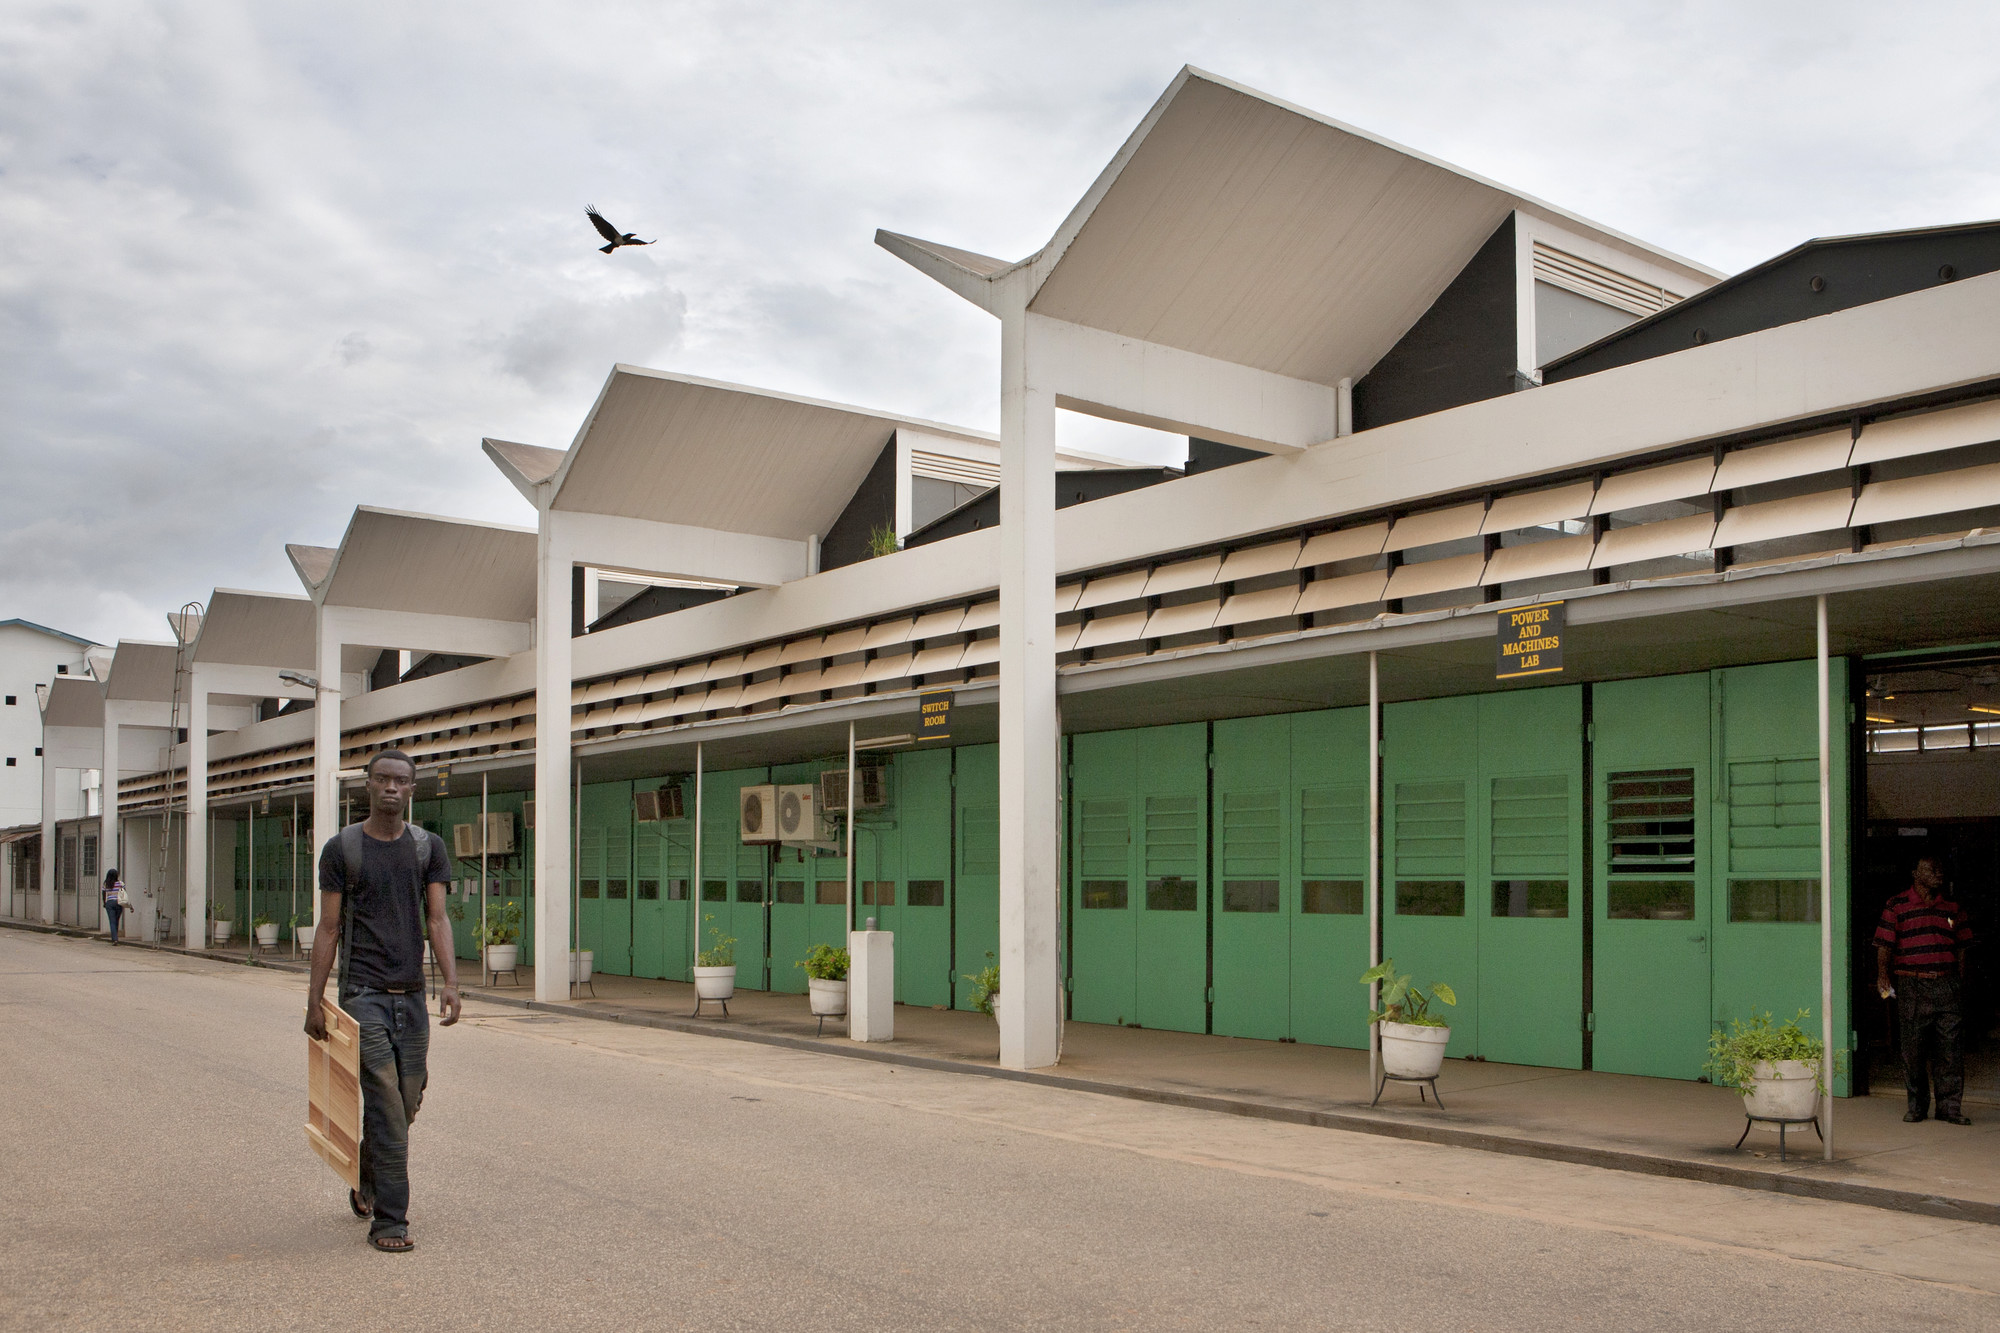 Escuela de Ingeniería en KNUST (Kwame Nkrumah University of Science and Technology), Kumasi (Ghana), por James Cubitt, 1956. Imagen Cortesía de Alexia Webster